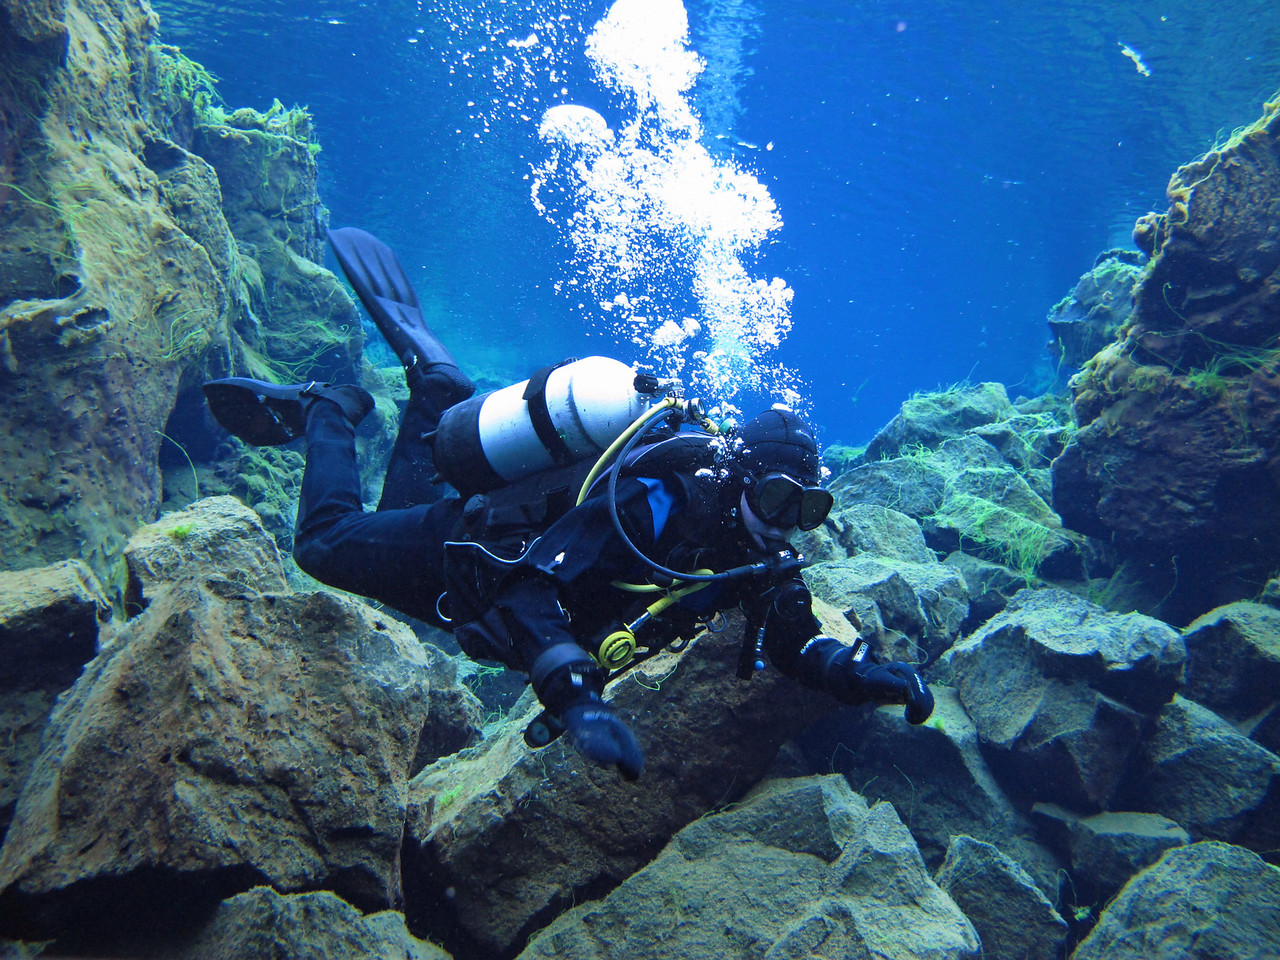 Mike scuba diving in Iceland in dry suit